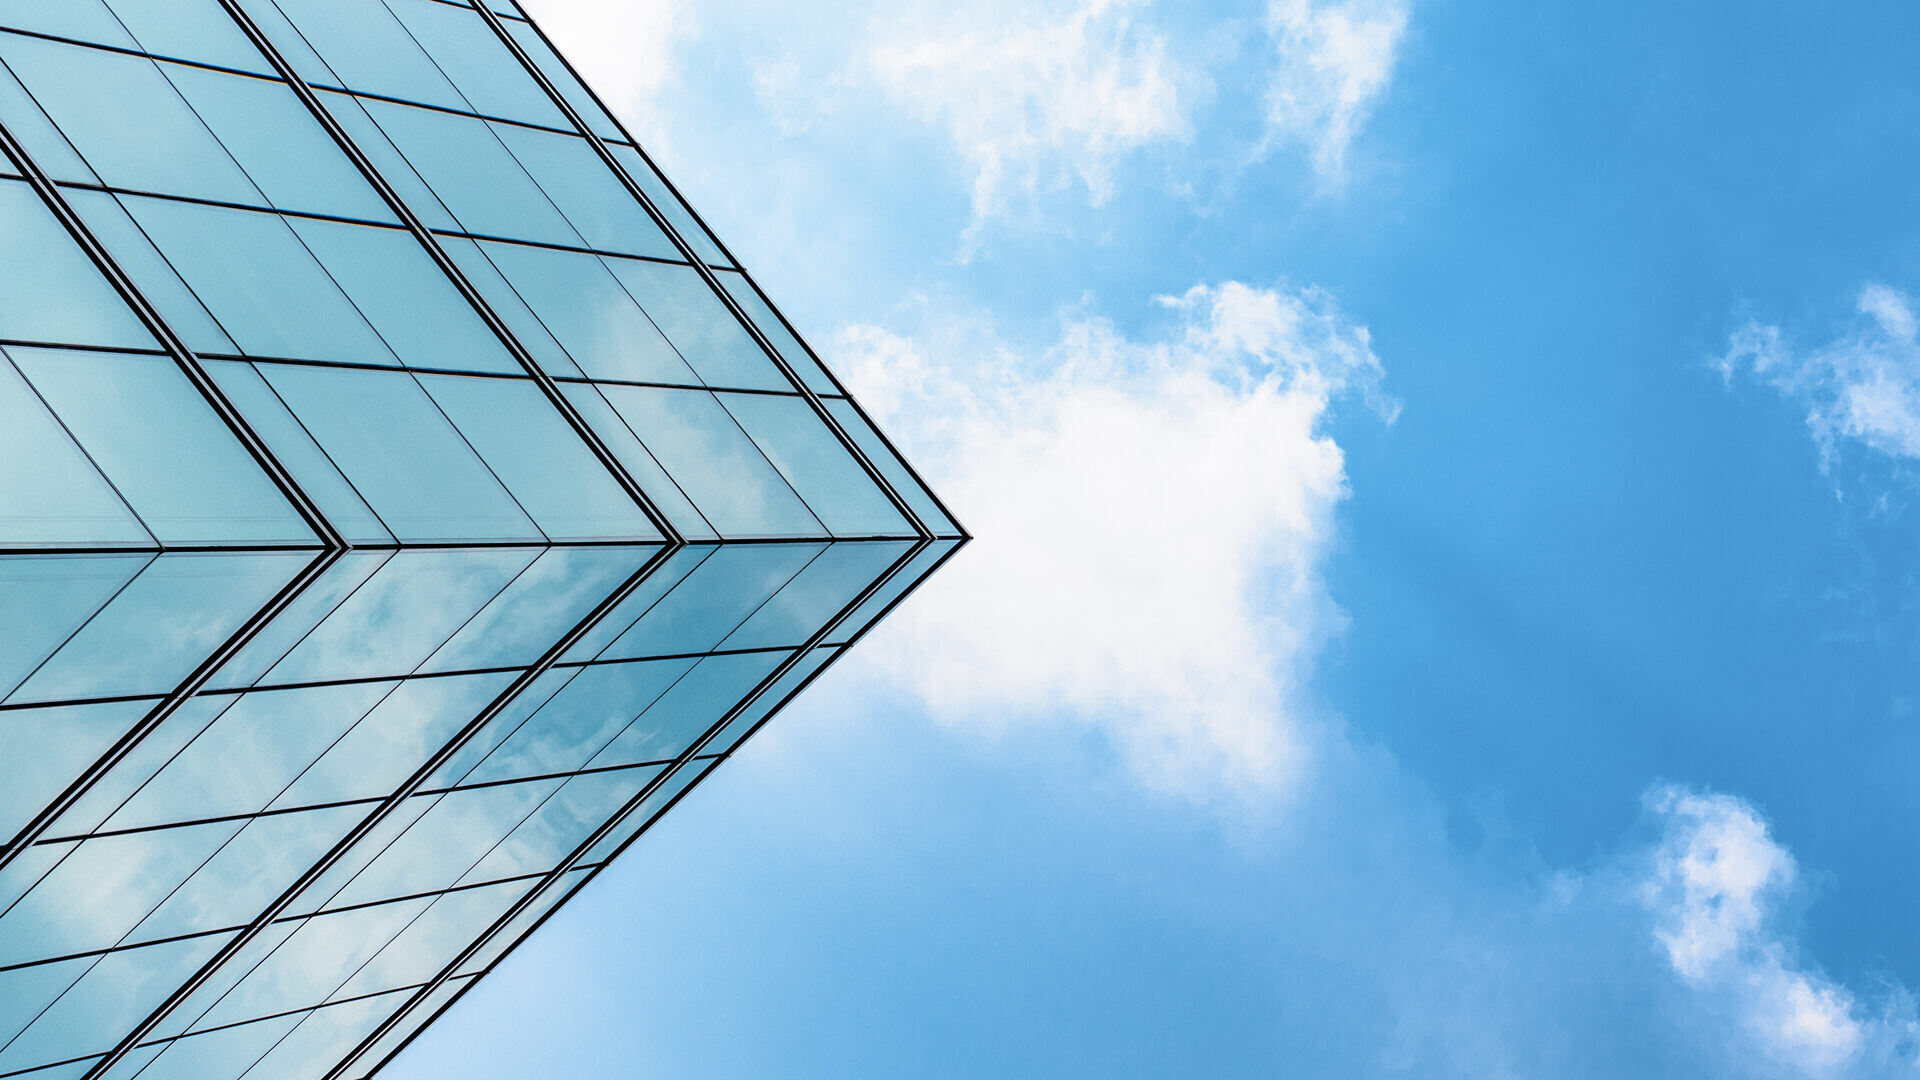 Commercial Property Insurance Ontario